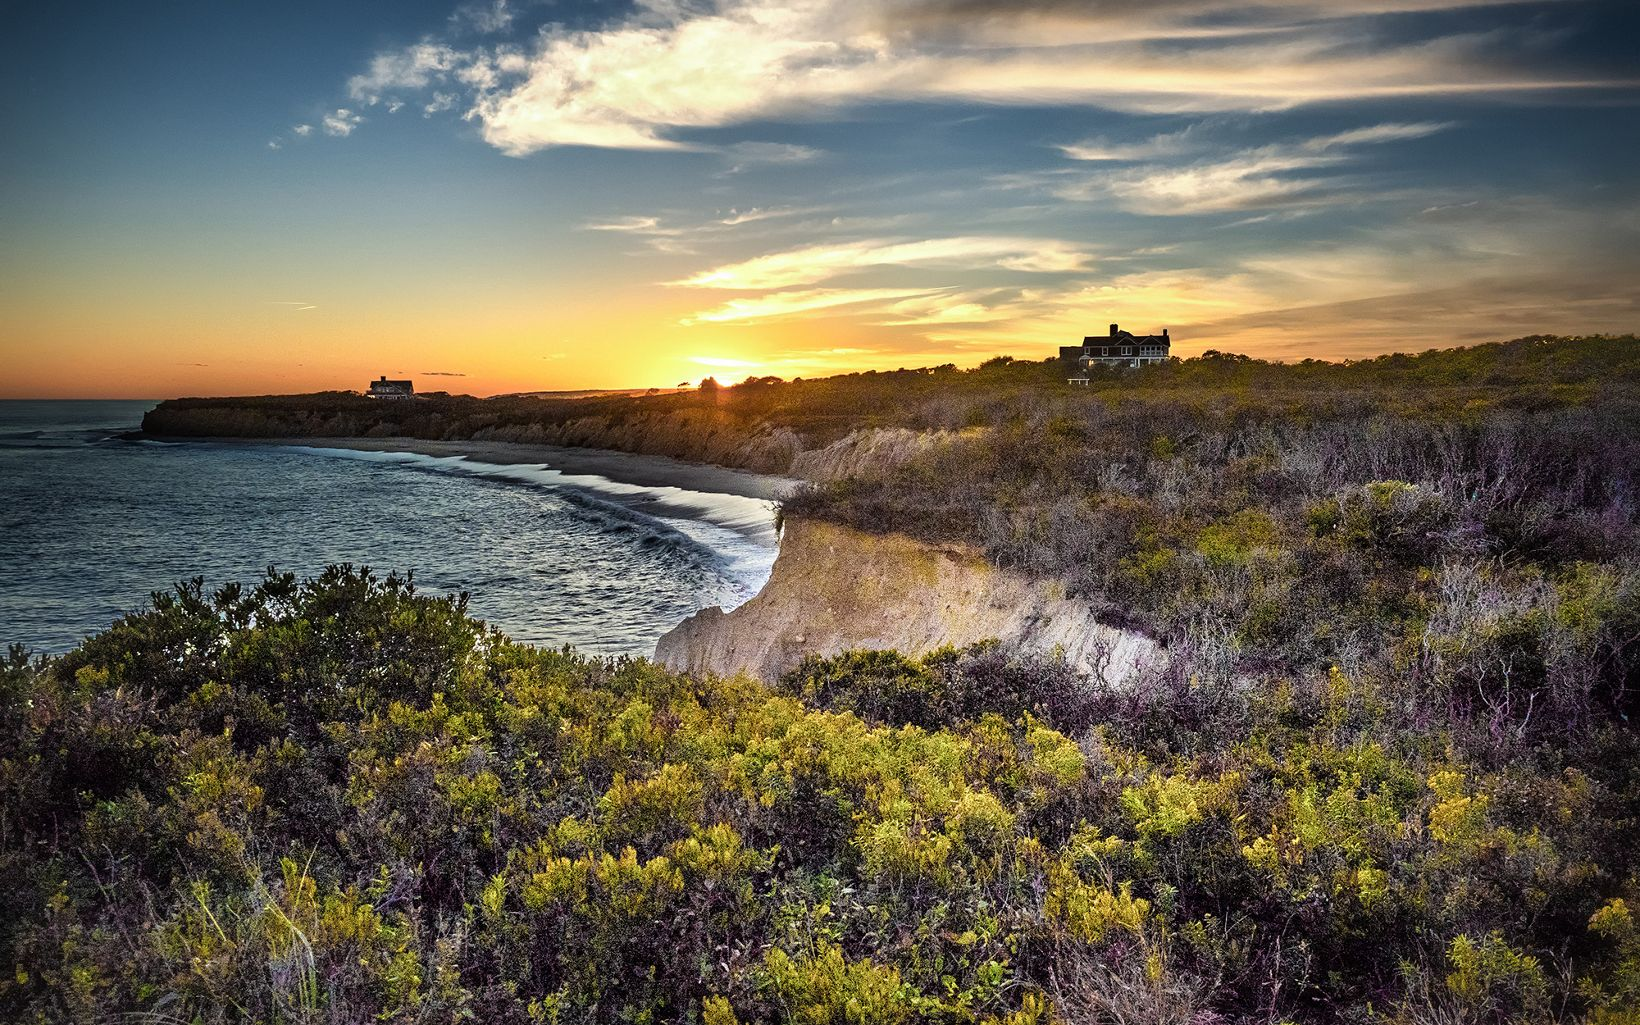 Amsterdam Beach Bluffs, Montauk